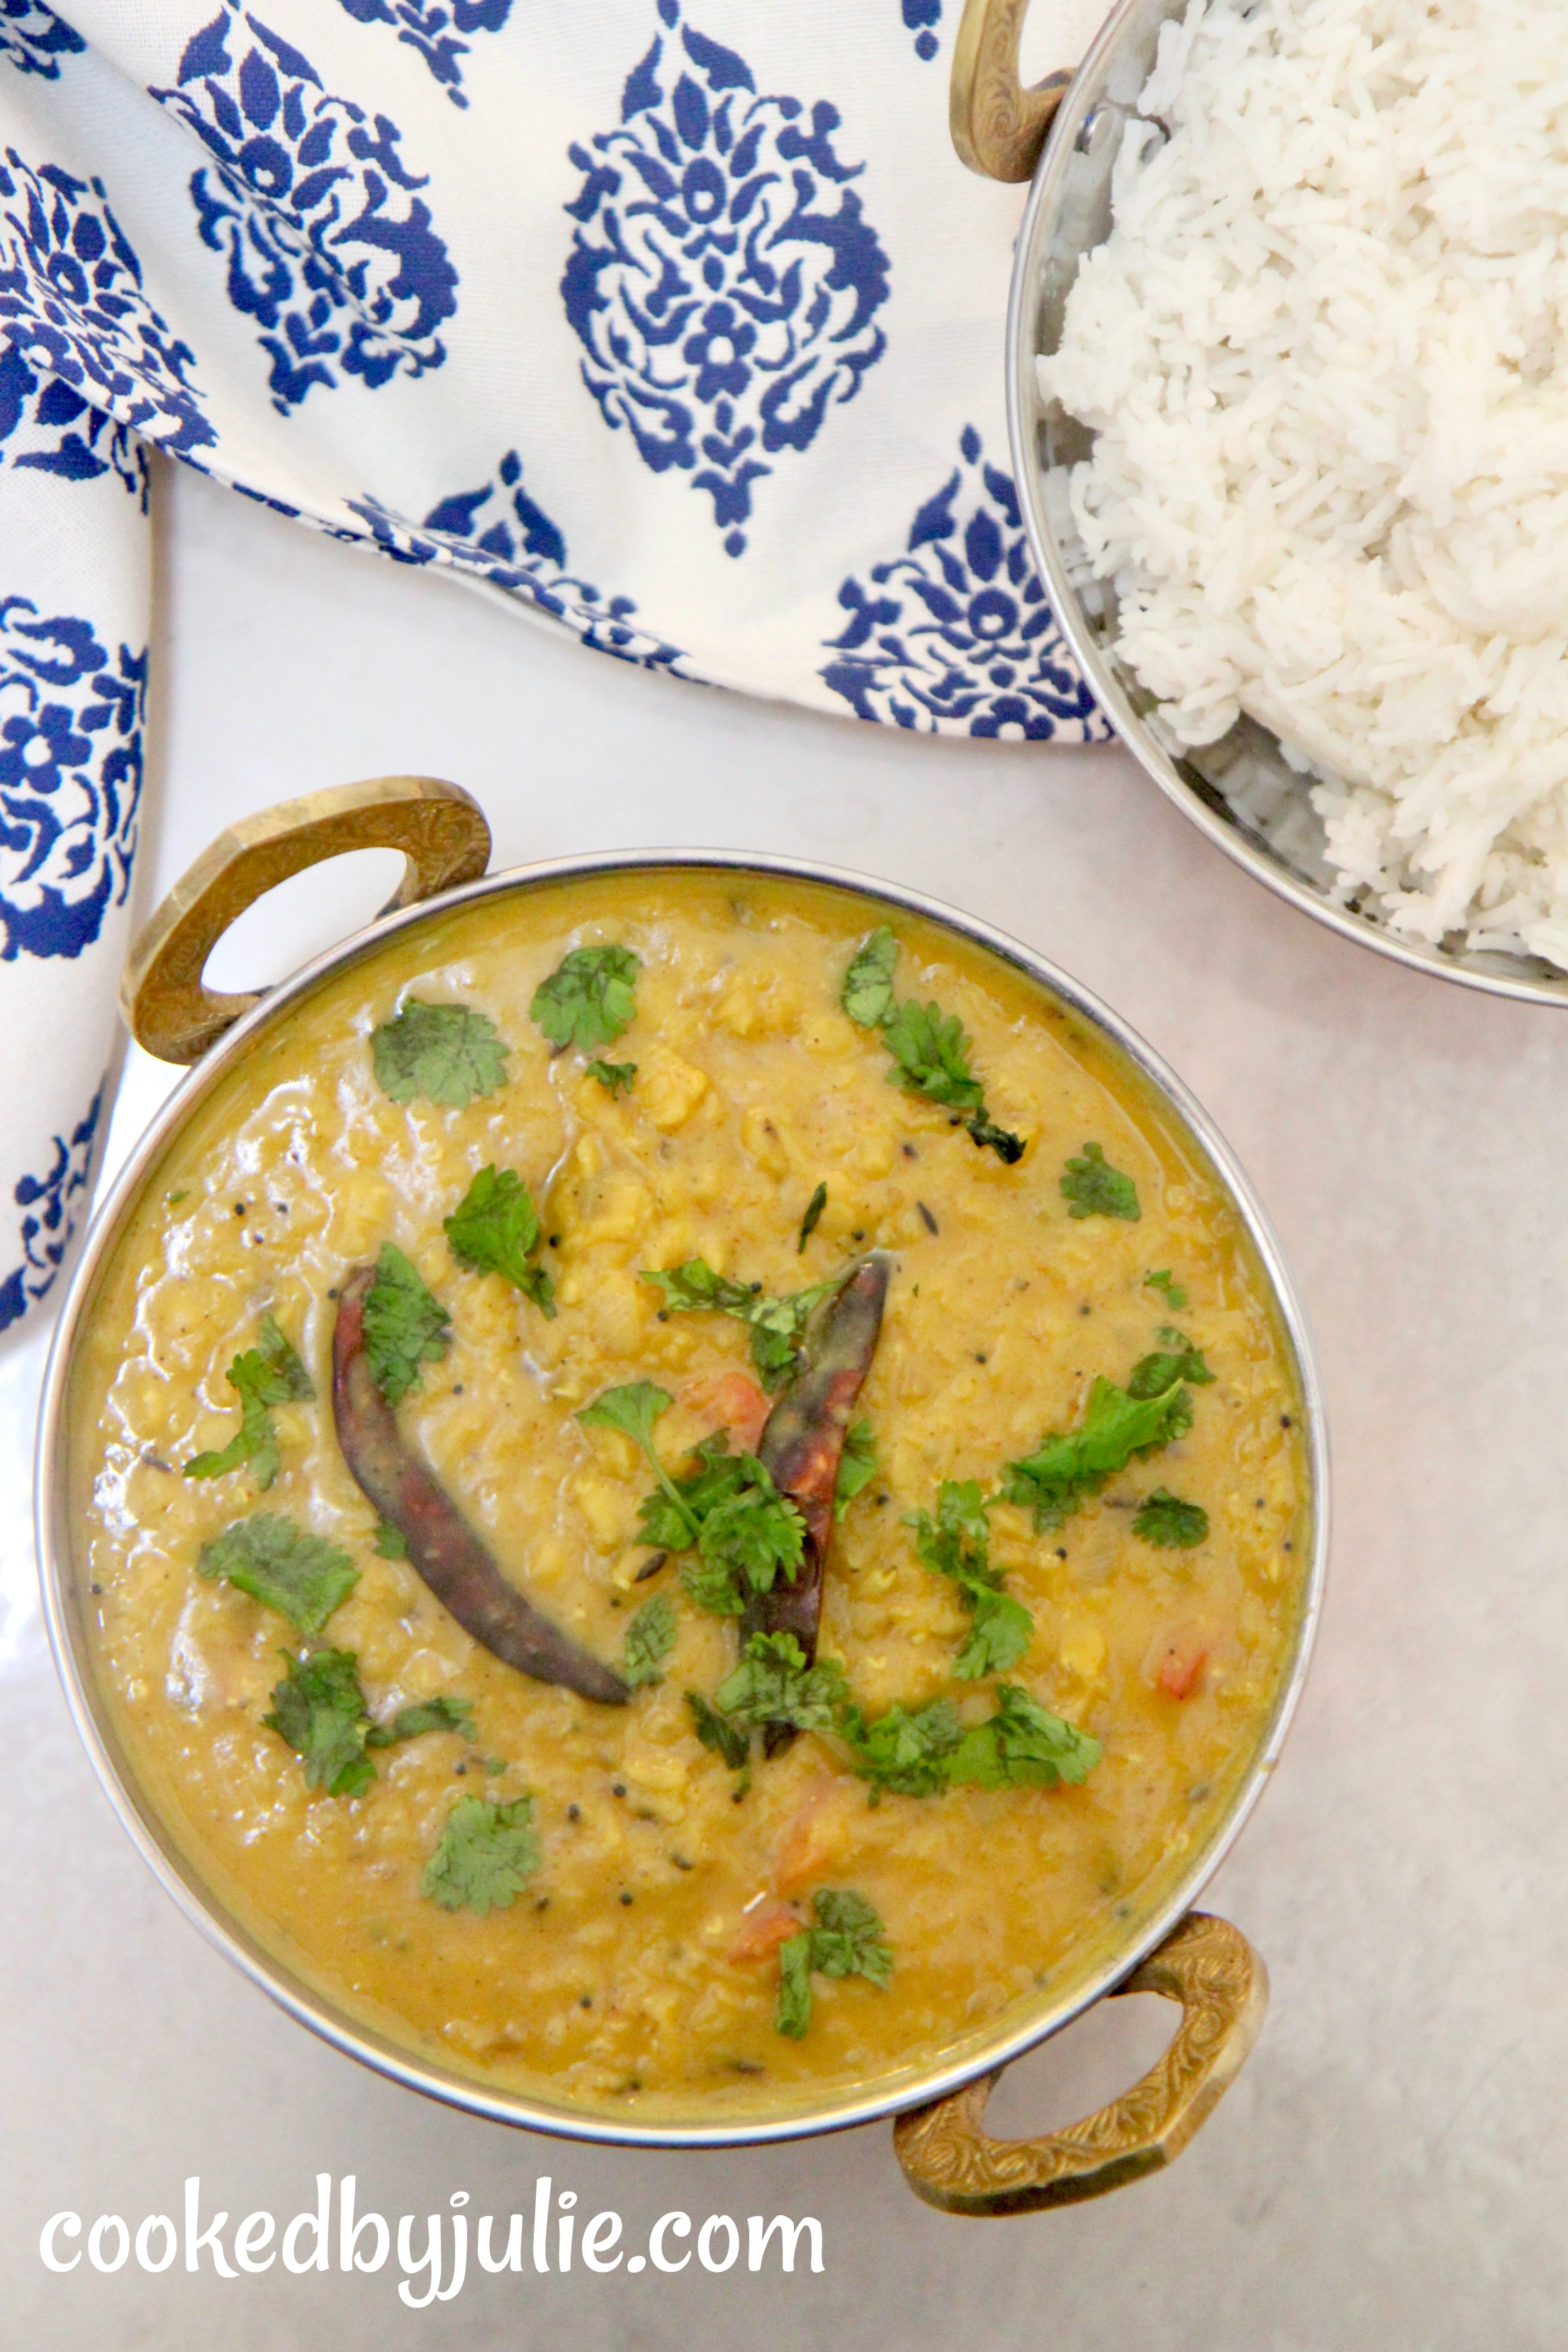 Indian spiced dal with a side of fluffy white basmati rice